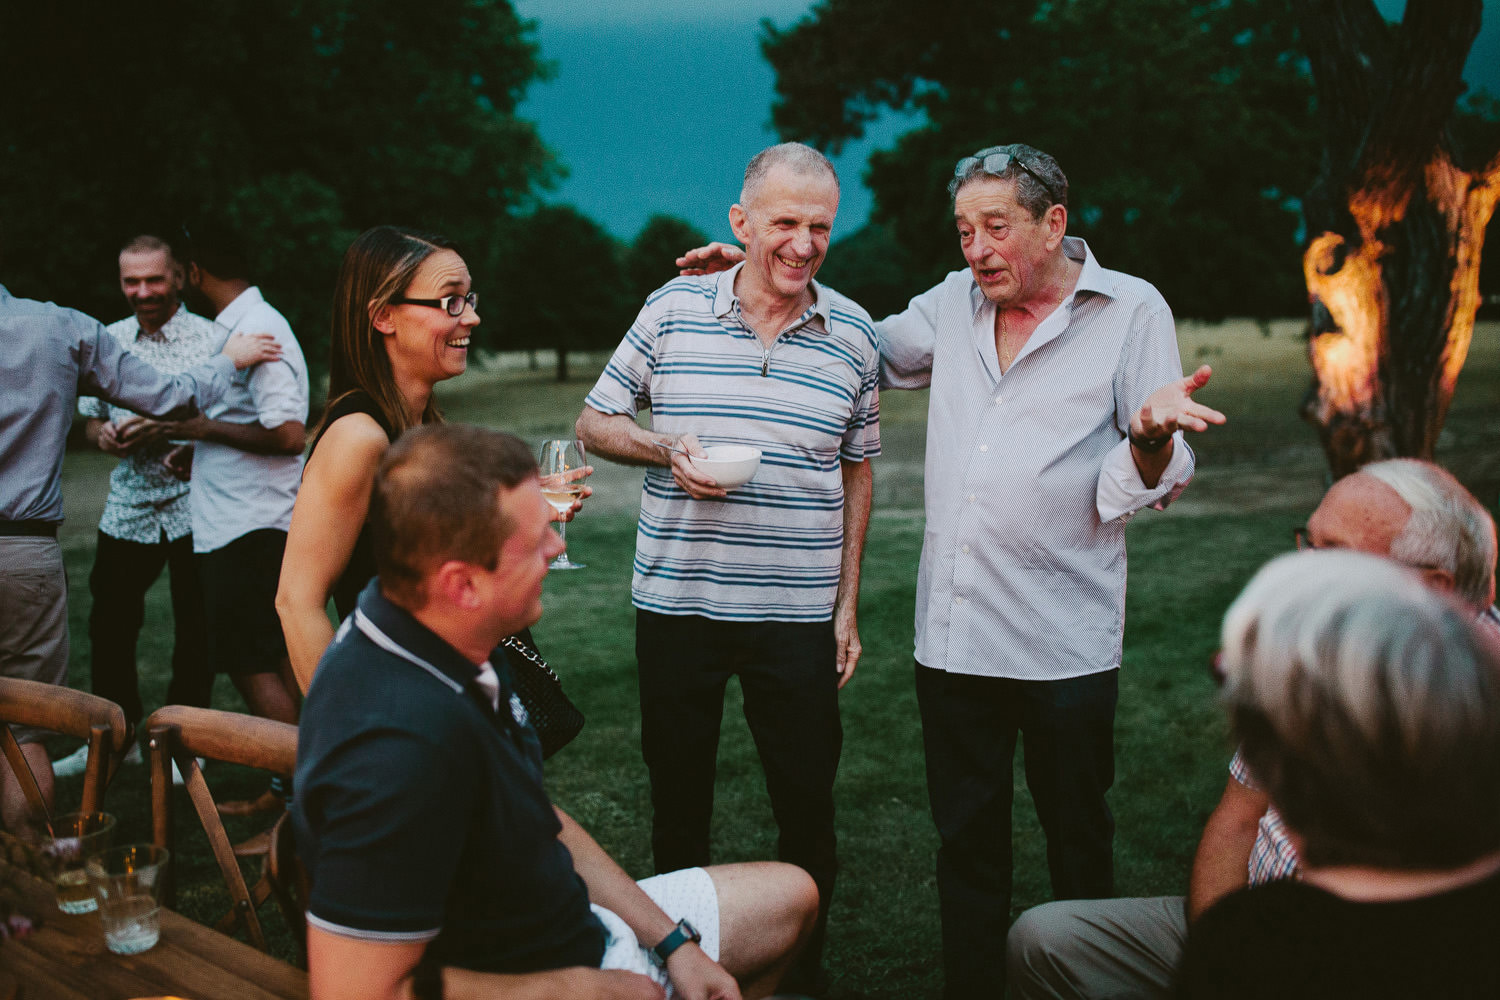 Old men laugh during outdoor party in the evening